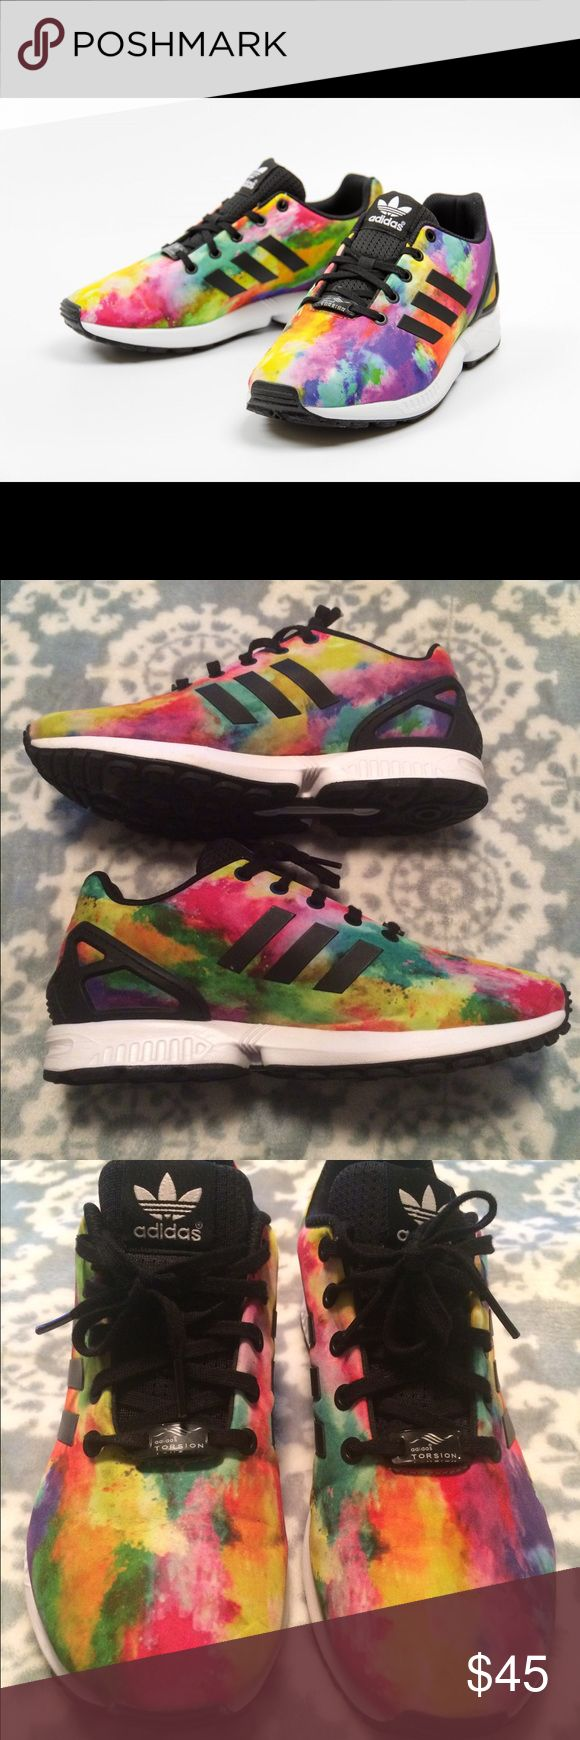 Adidas ZX Flux multi-color Adidas ZX Flux Multi-color shoes. I only wore them a few times, in mint condition. They are super comfy but they were too colorful for my taste. They are an 8.5 in women's. Adidas Shoes Athletic Shoes